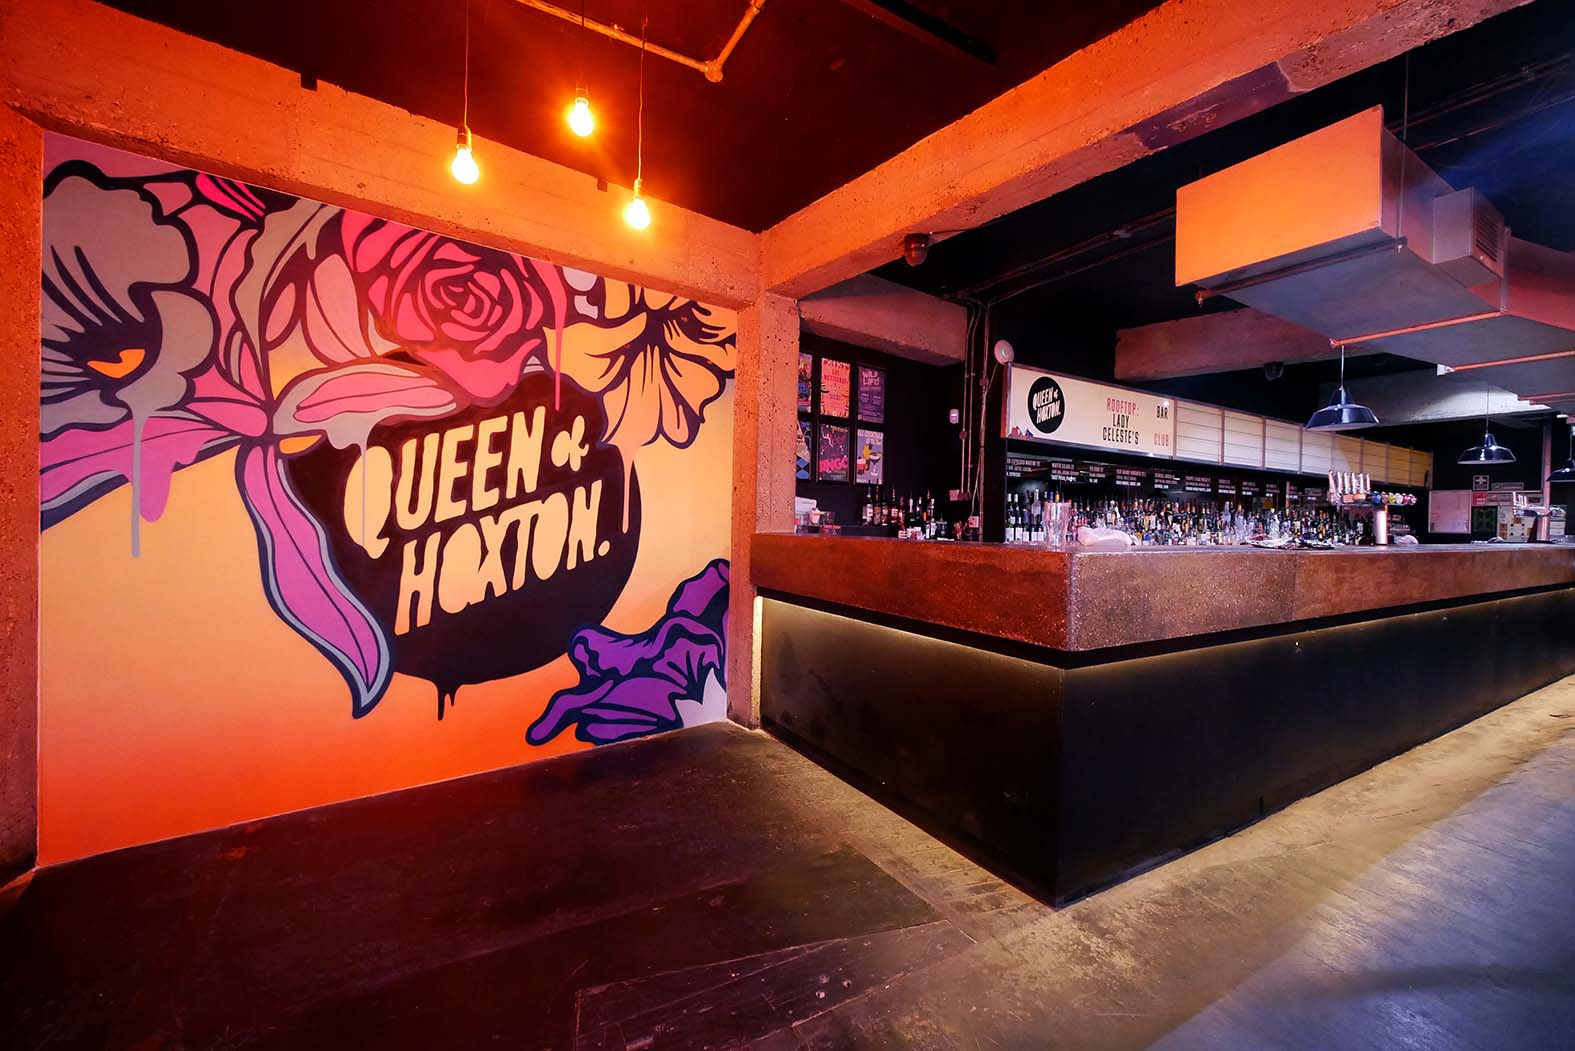 Nerone-queen-of-hoxton-painting-10